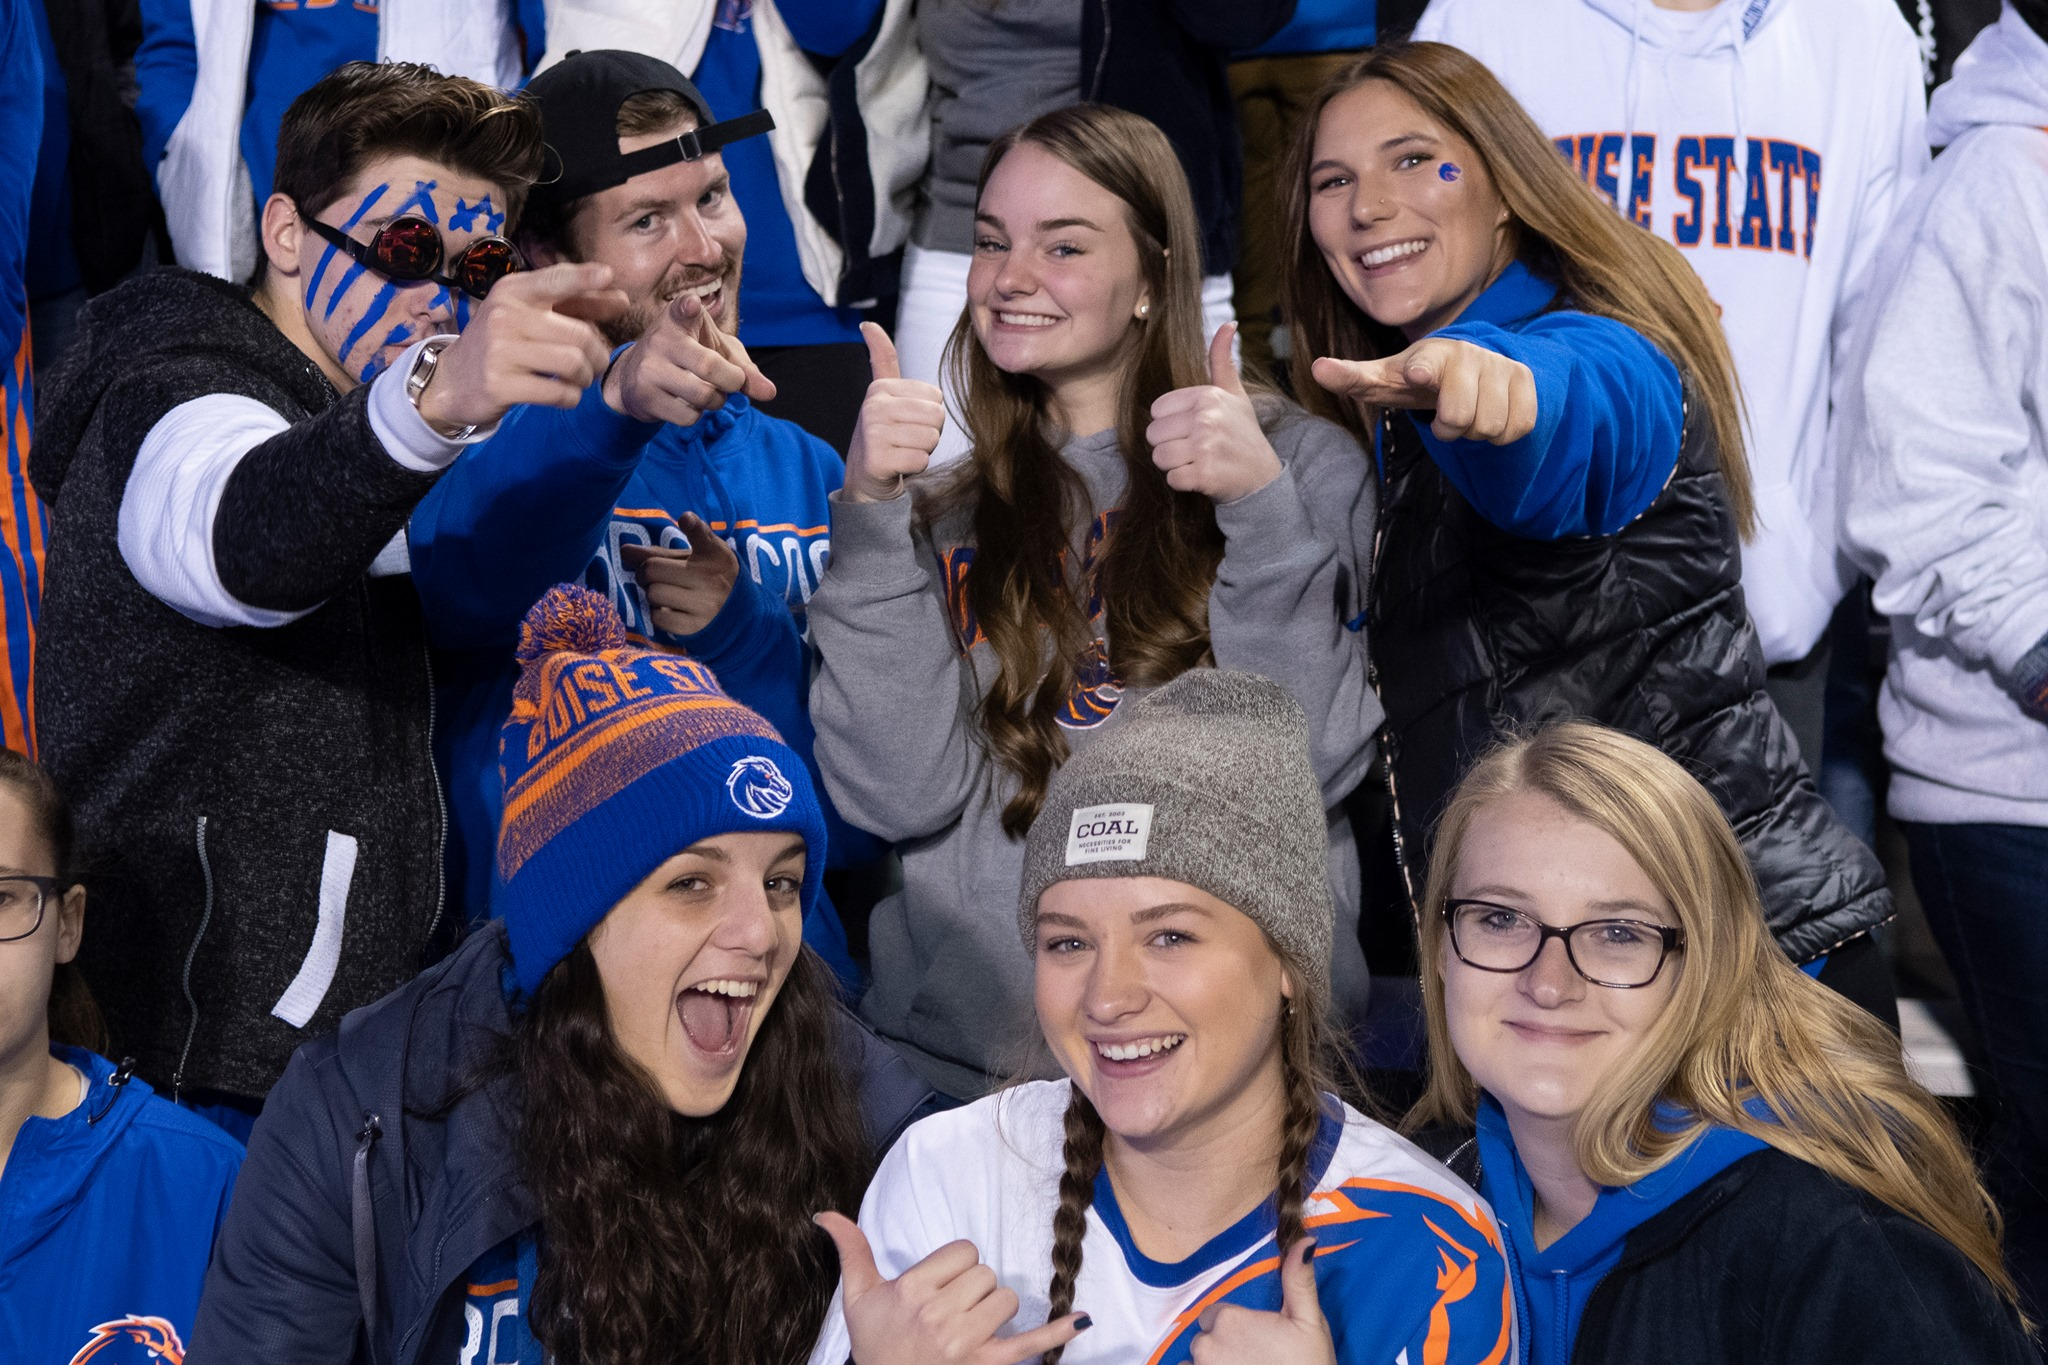 Boise state students in football student section